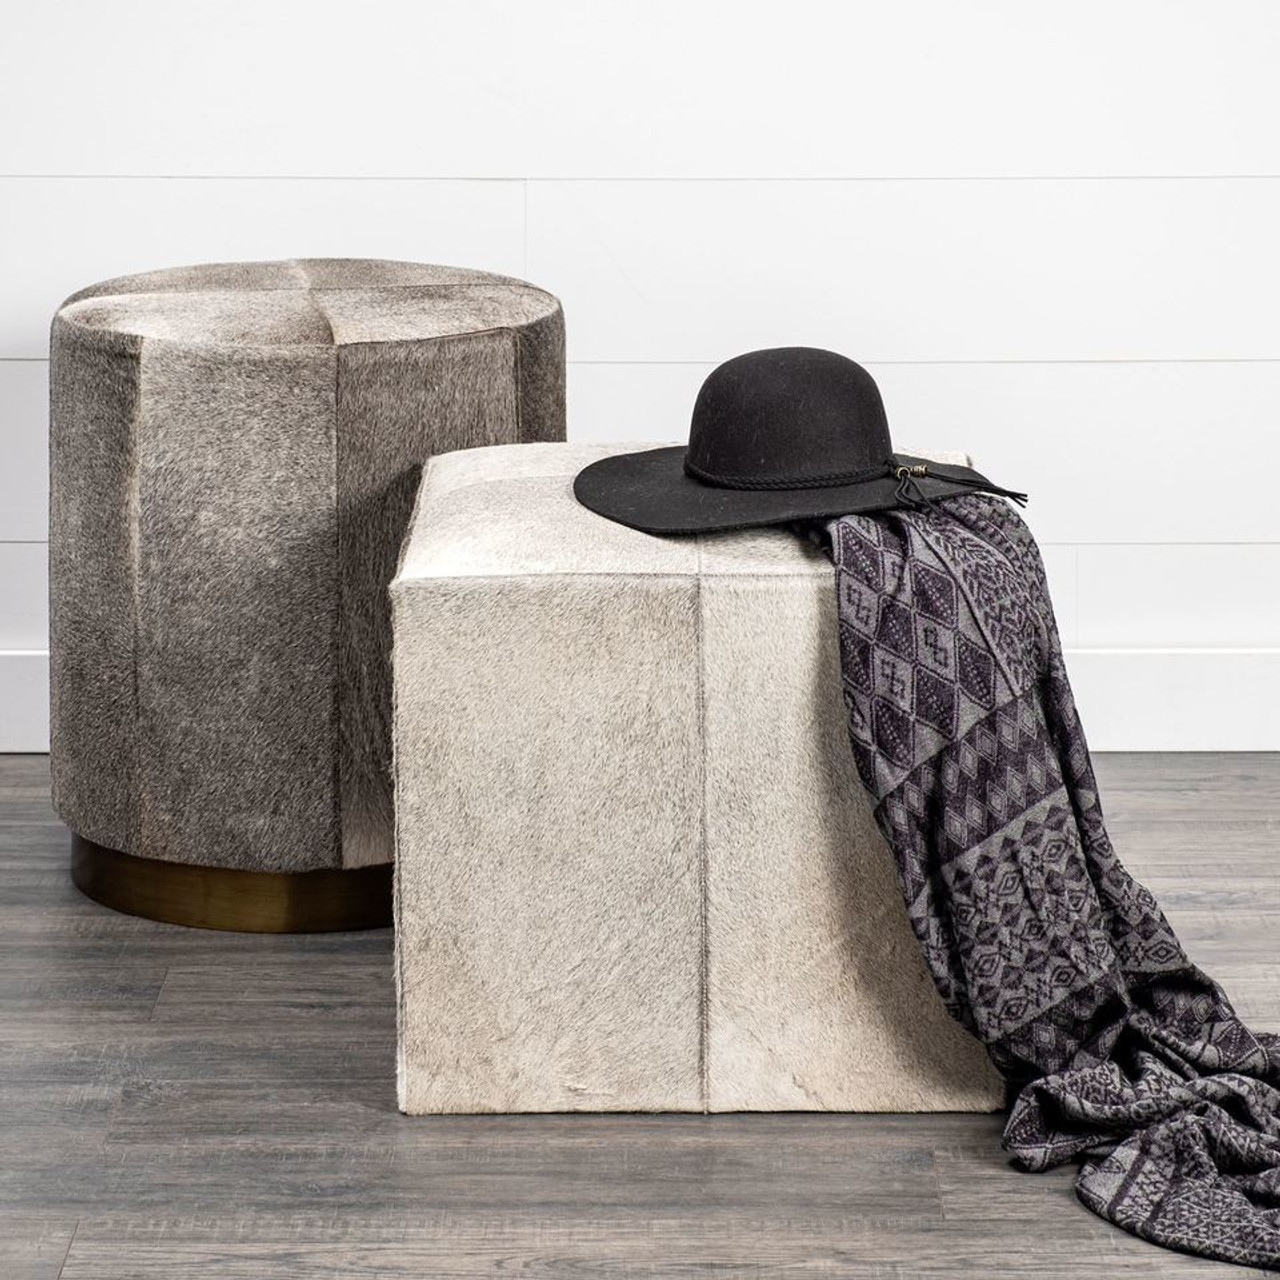 Stool and Ottomans